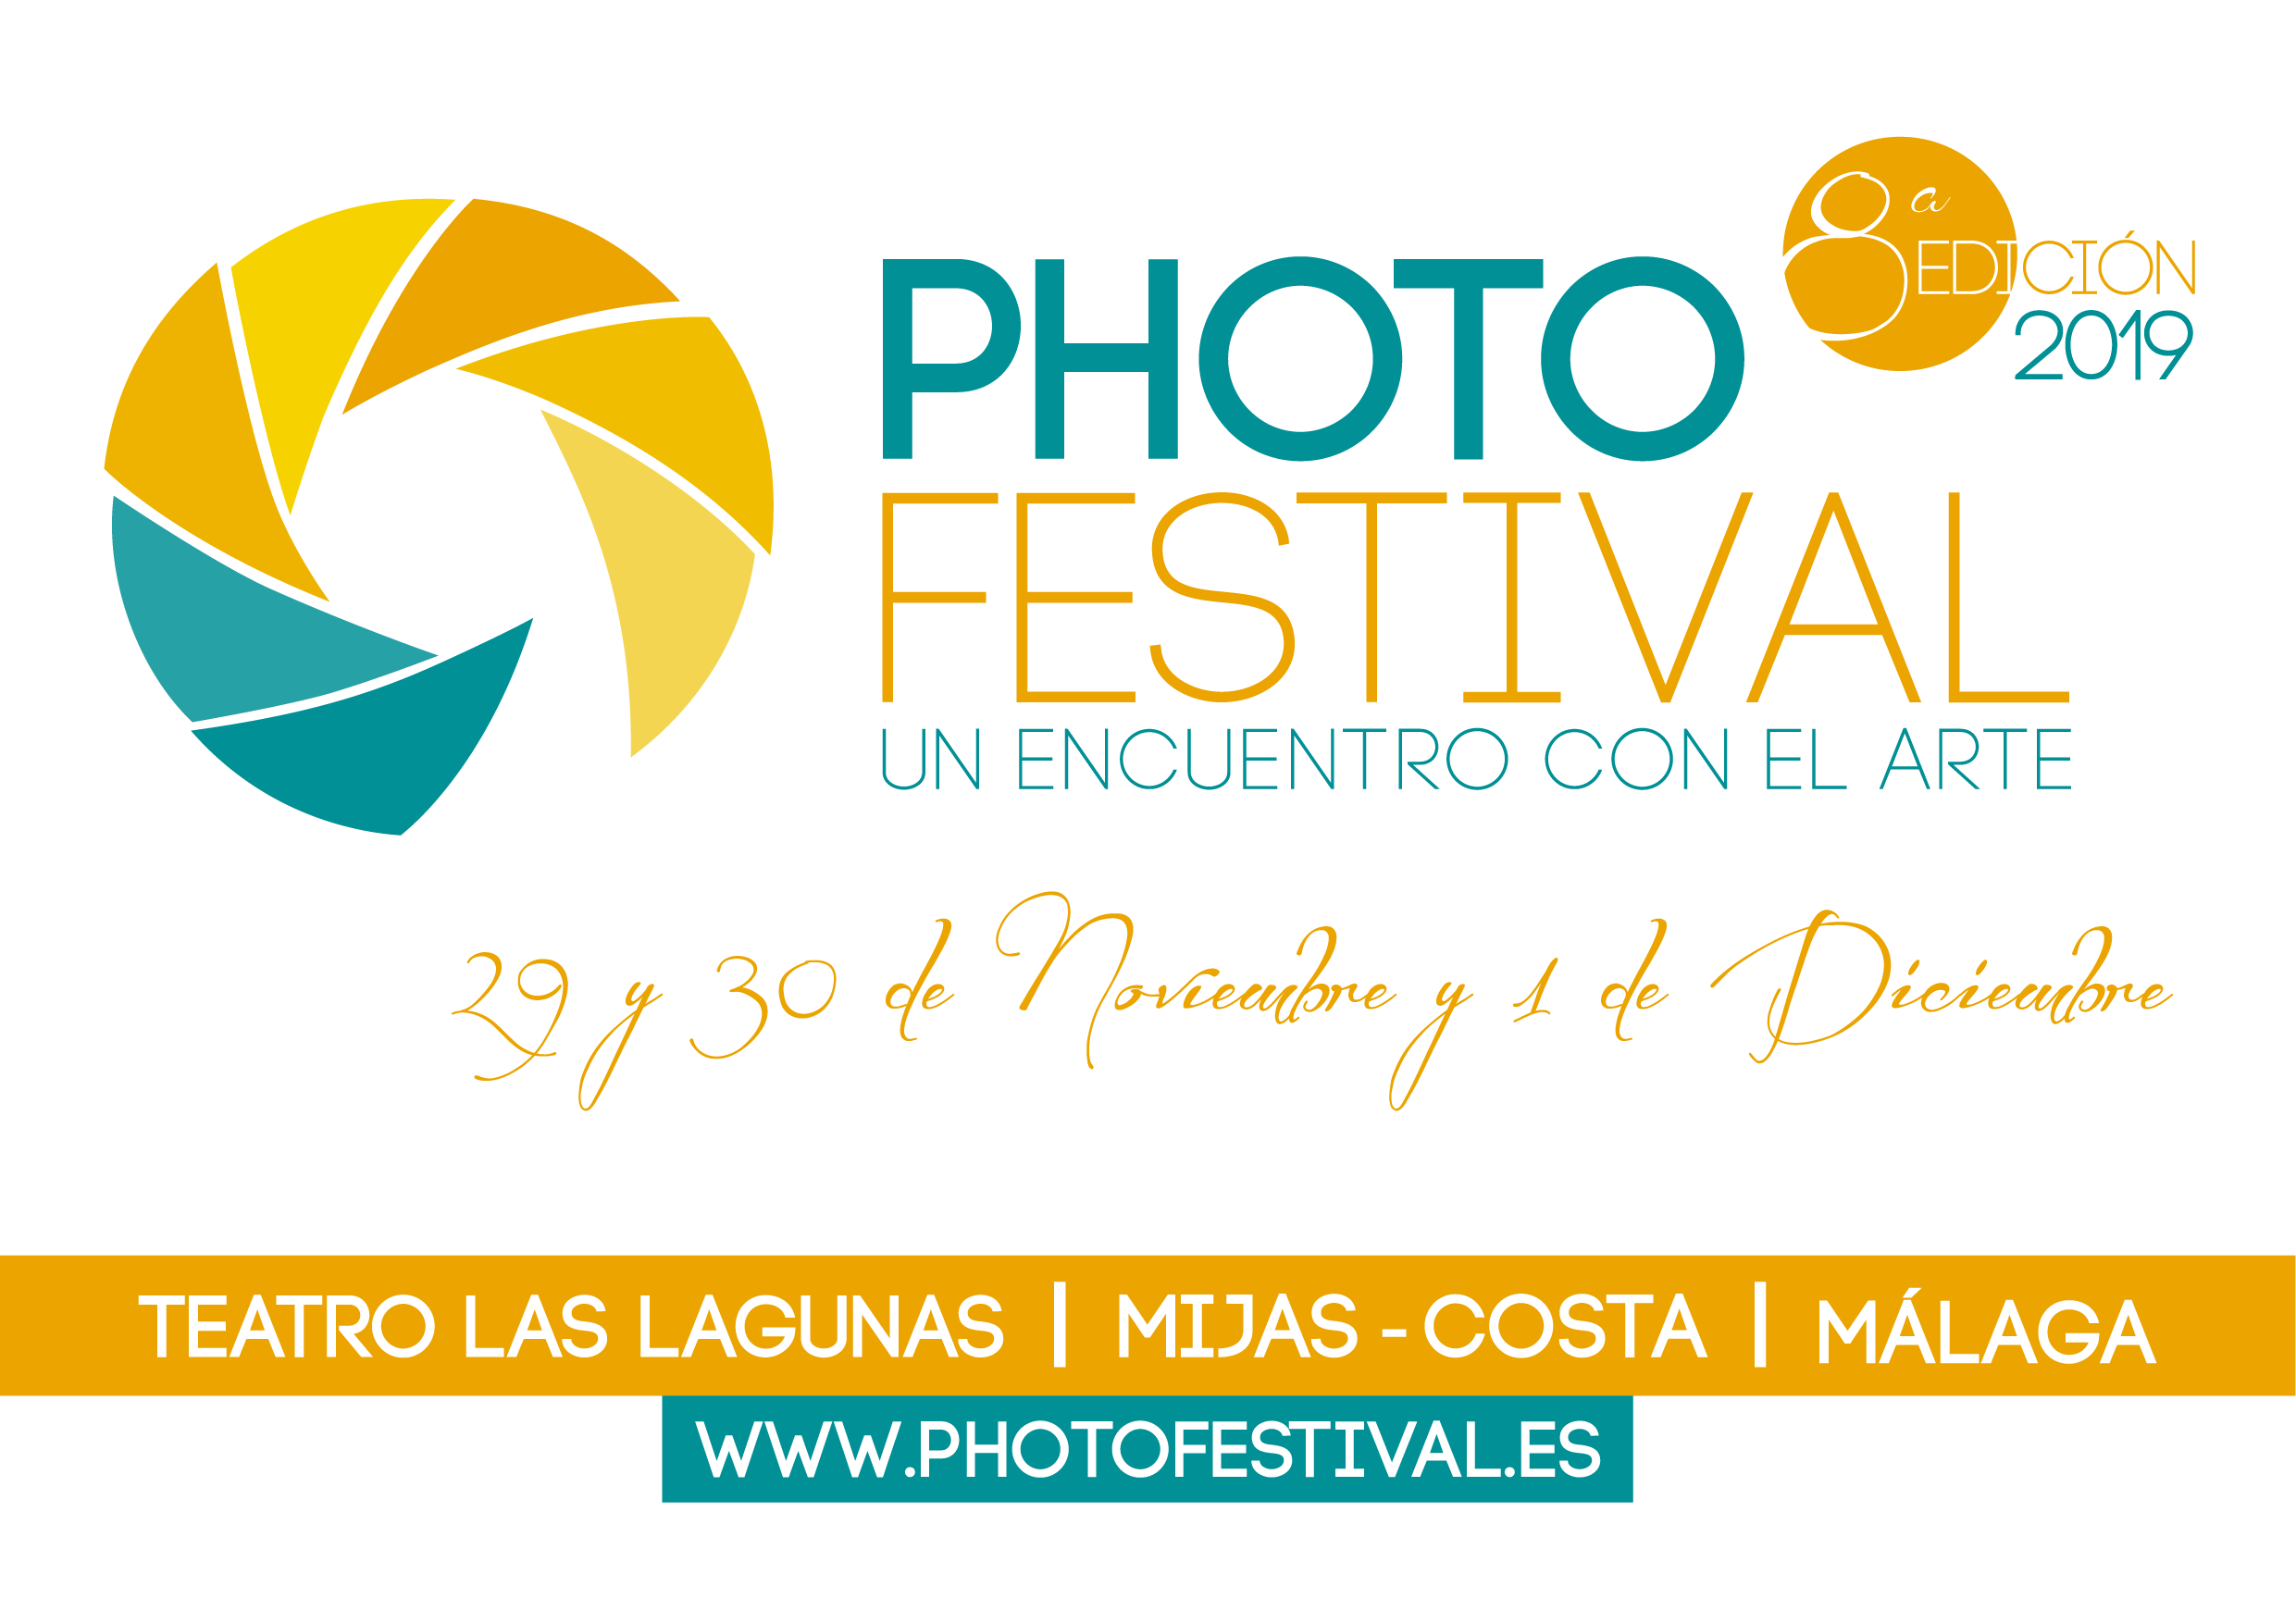 Cartel Photofestival 2019